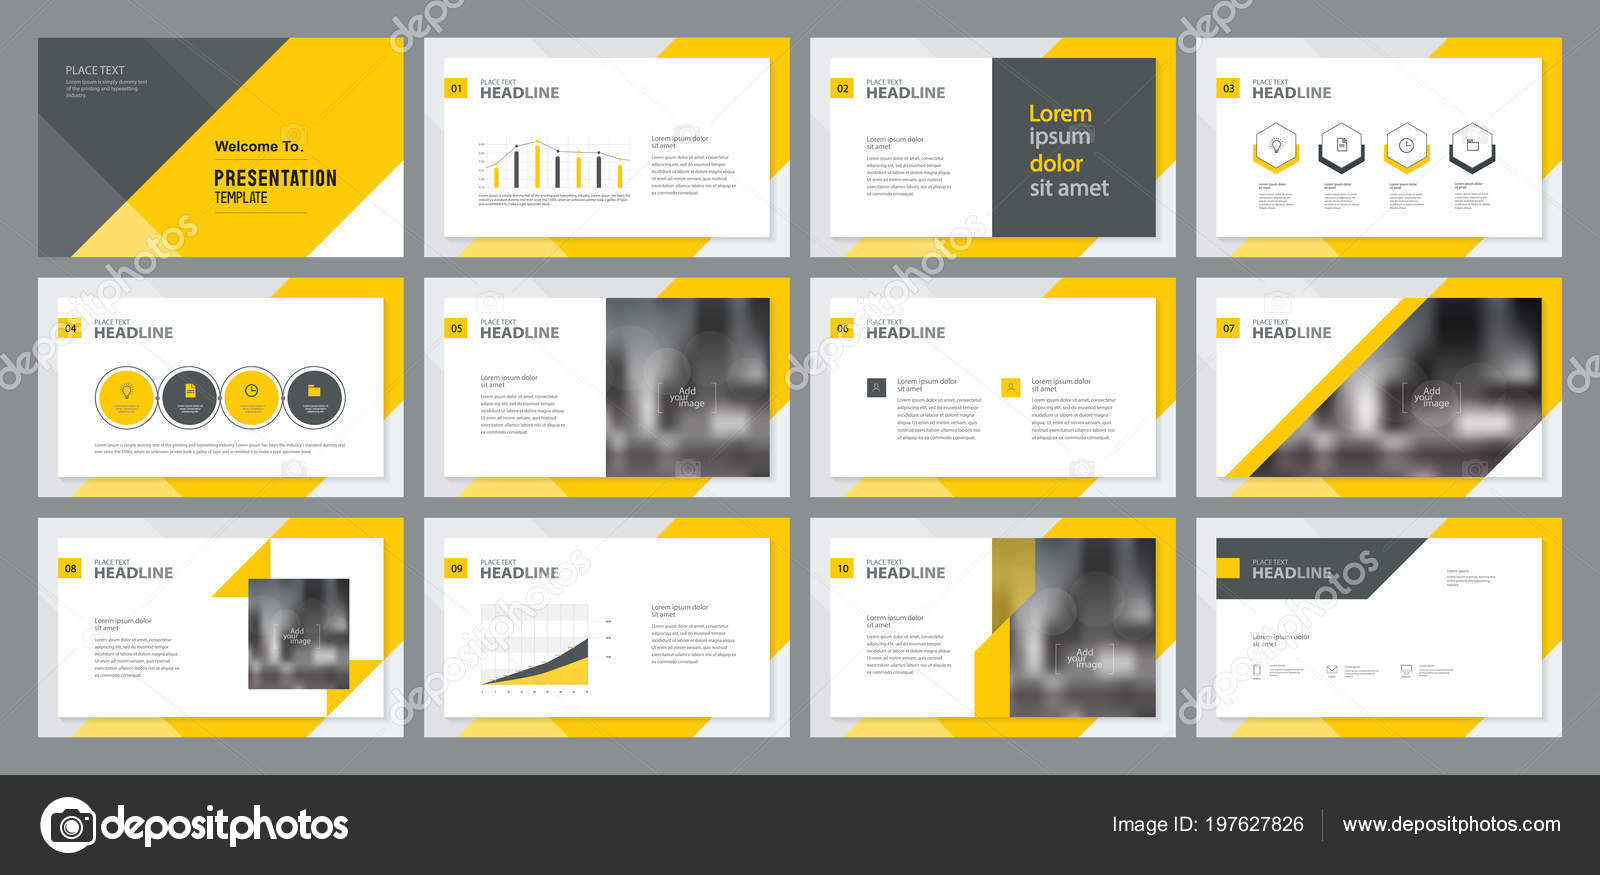 Template Presentation Design Page Layout Design Brochure